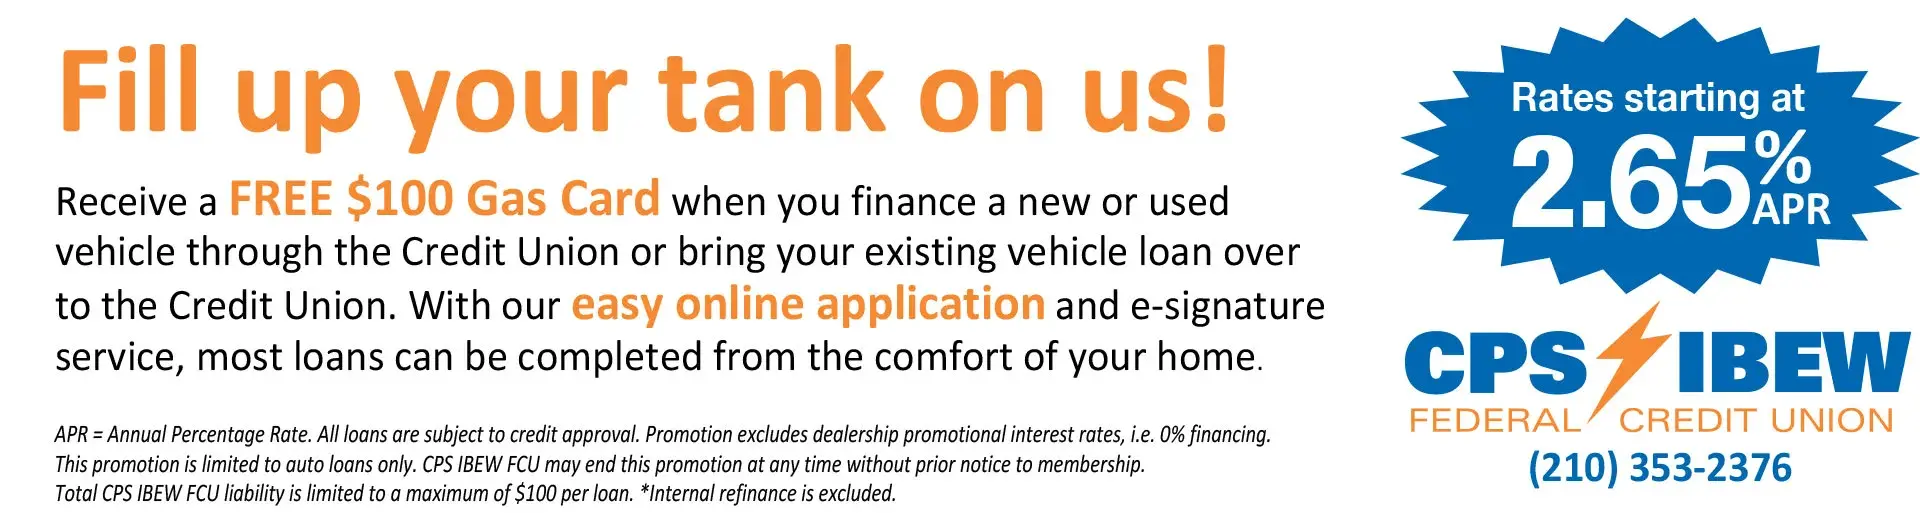 Federal Credit Union San Antonio | IBEW Credit Union | CPS Credit Union | Fill up your tank on us